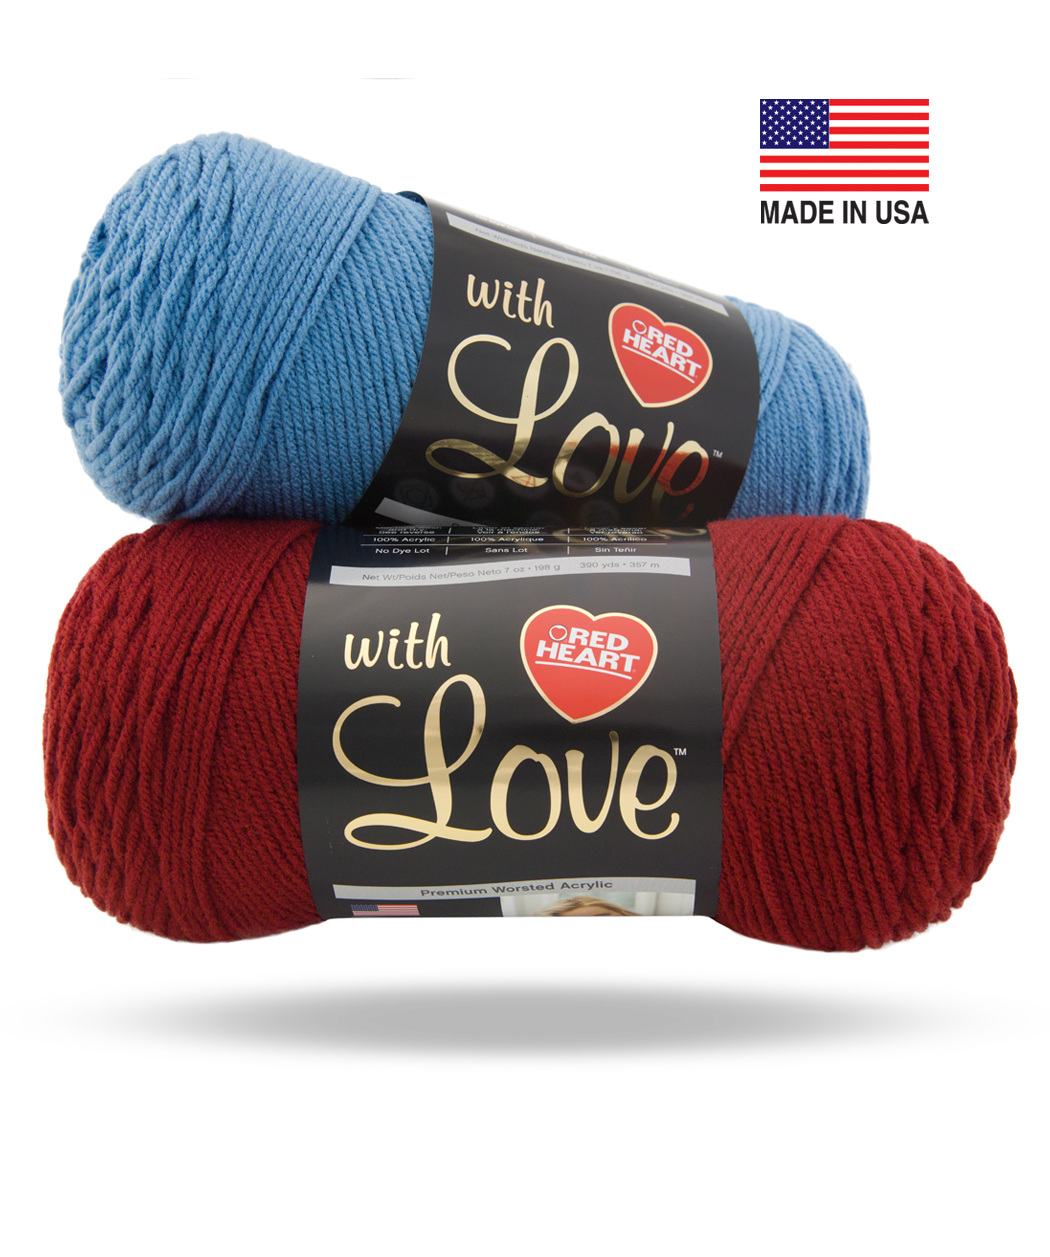 With Love, from Red Heart | Yarns | Pinterest | Hilo, Lana y Tejido